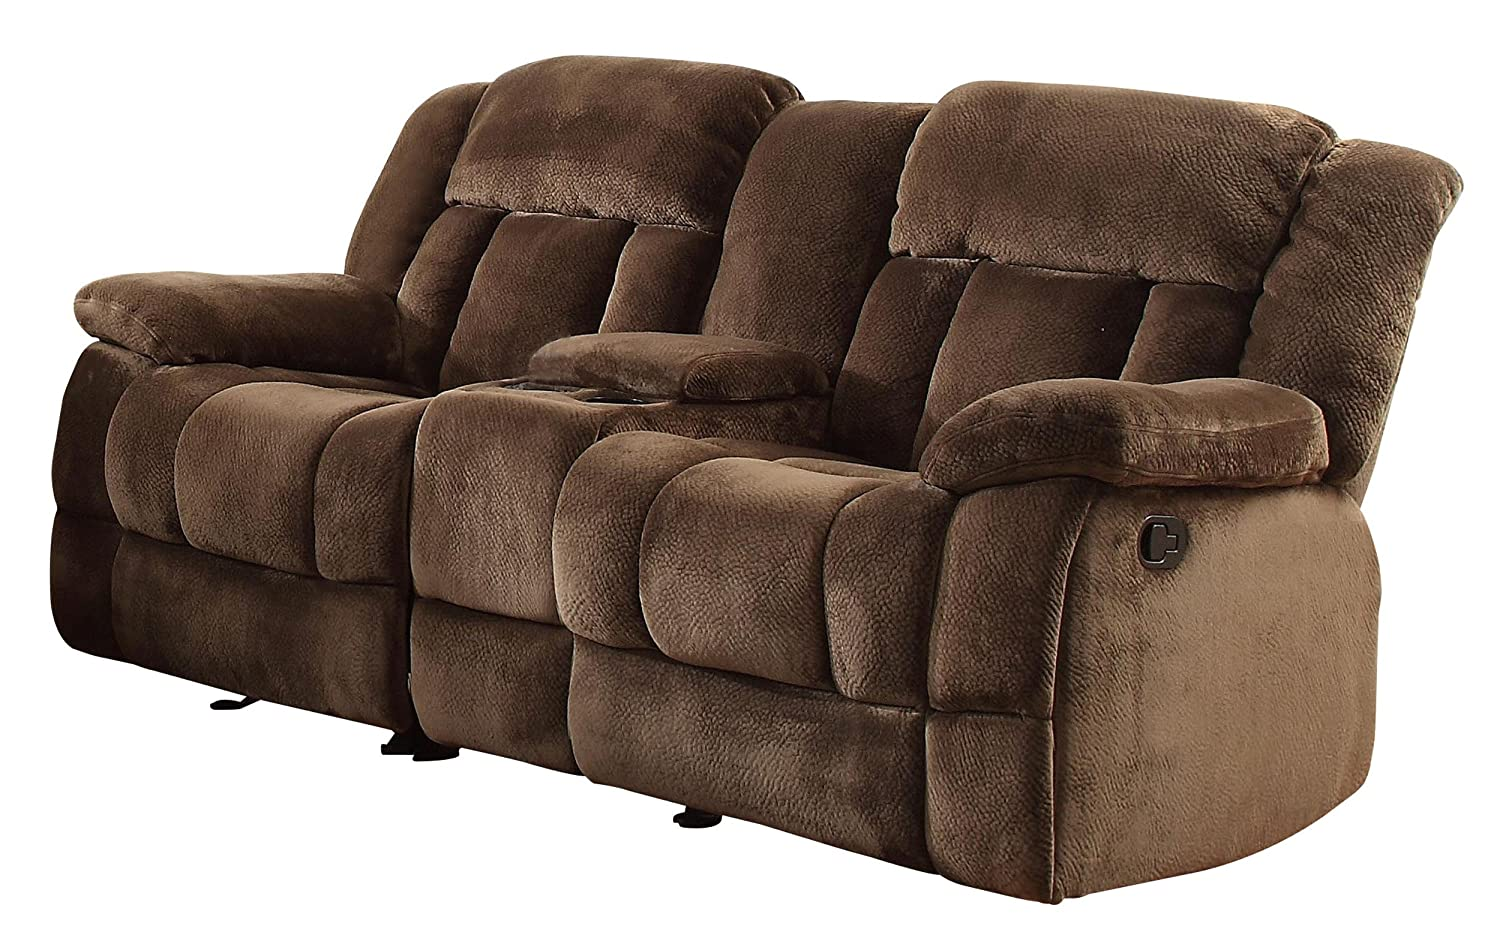 best sofa recliner cushion set the recliners for your home